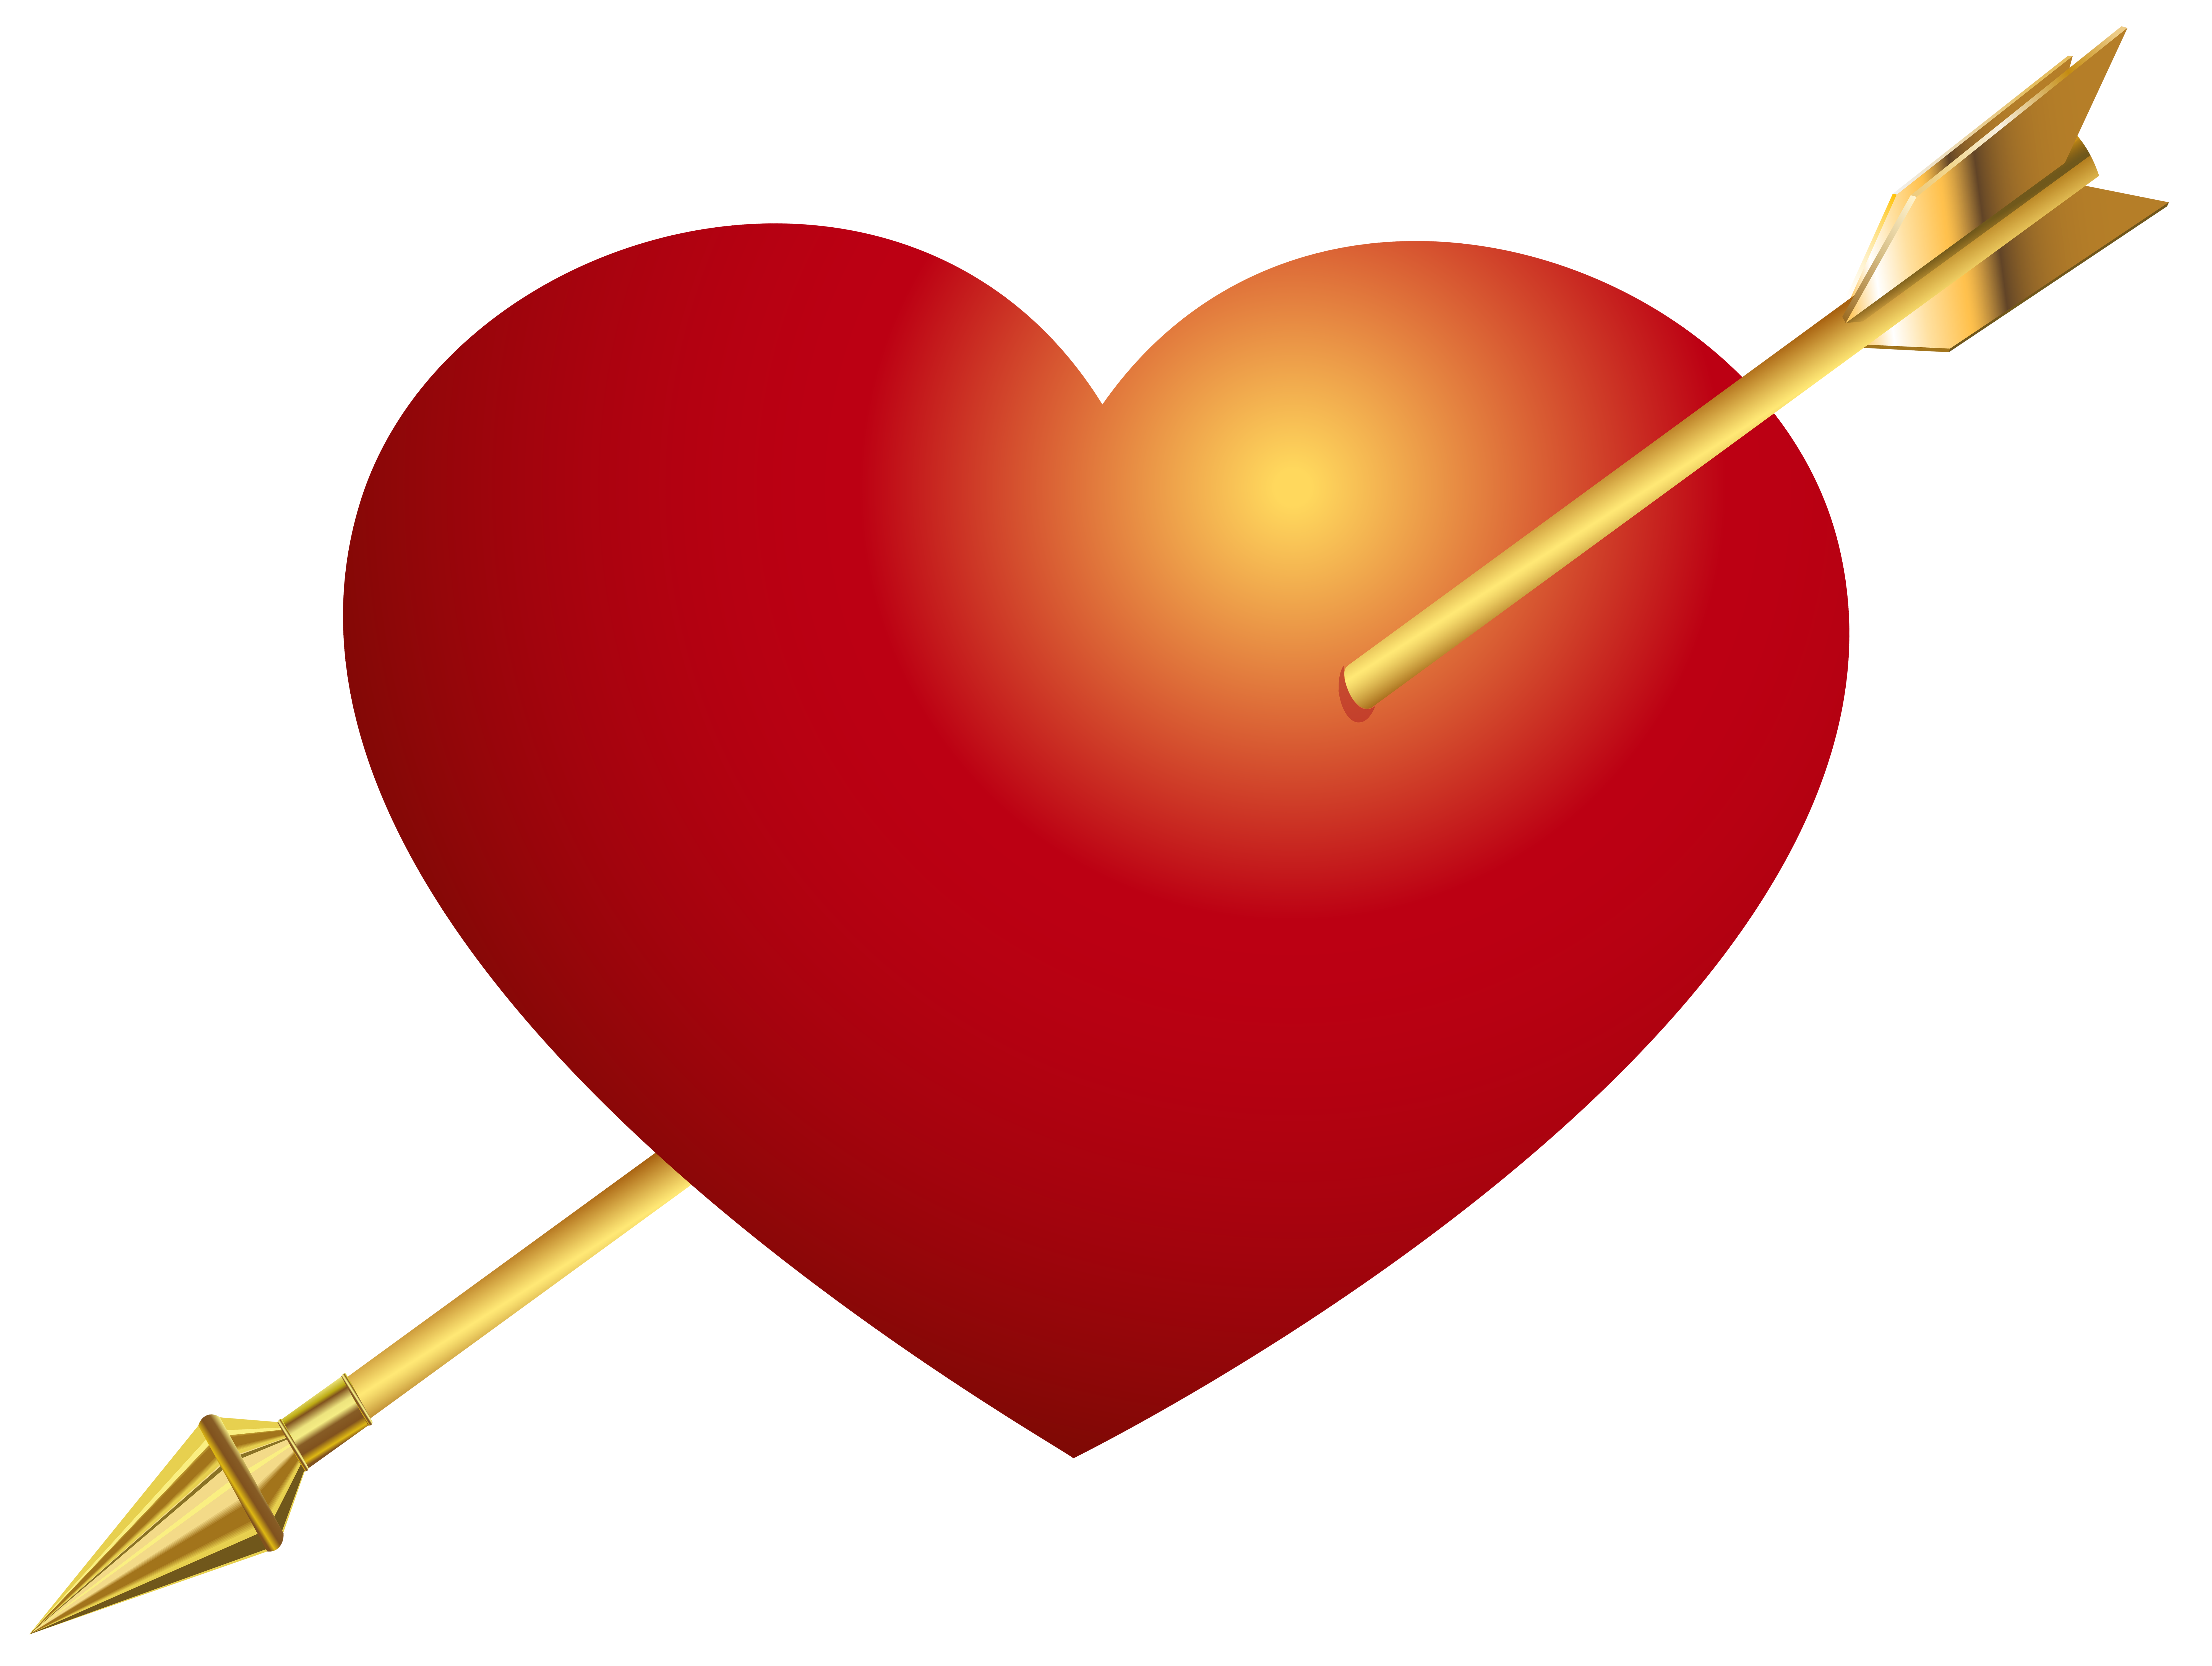 Red with arrow png. Rock clipart heart